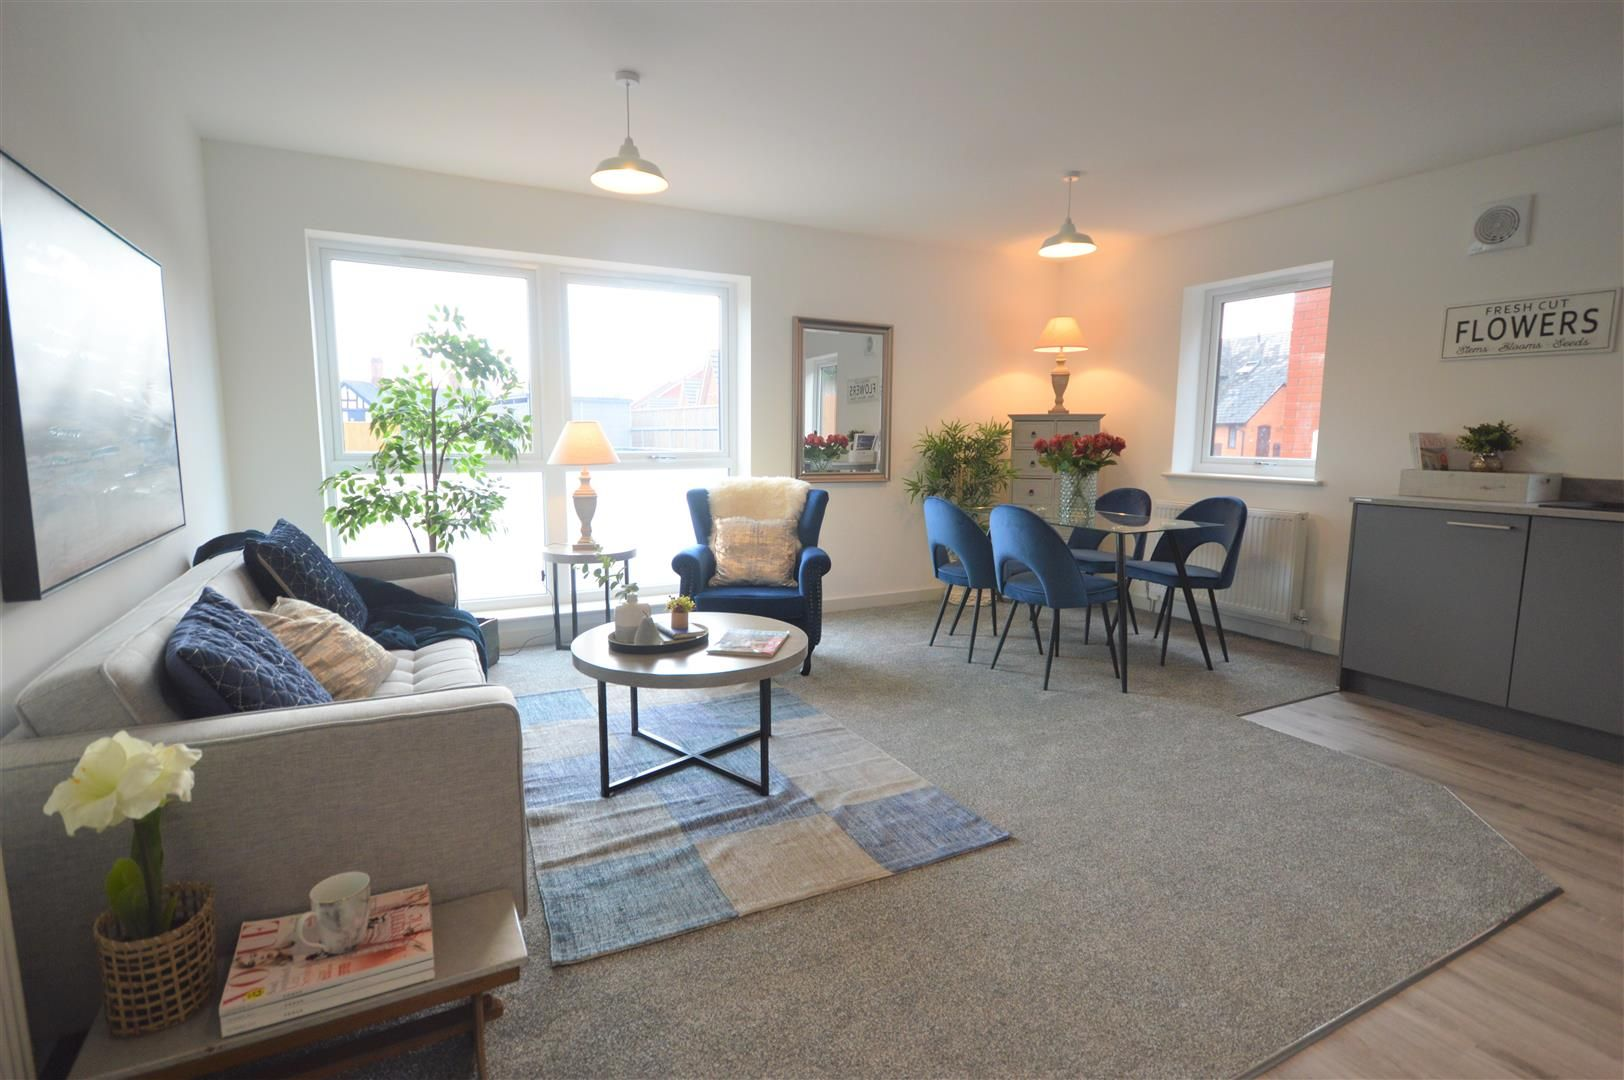 2 bed house for sale in Leominster  - Property Image 8